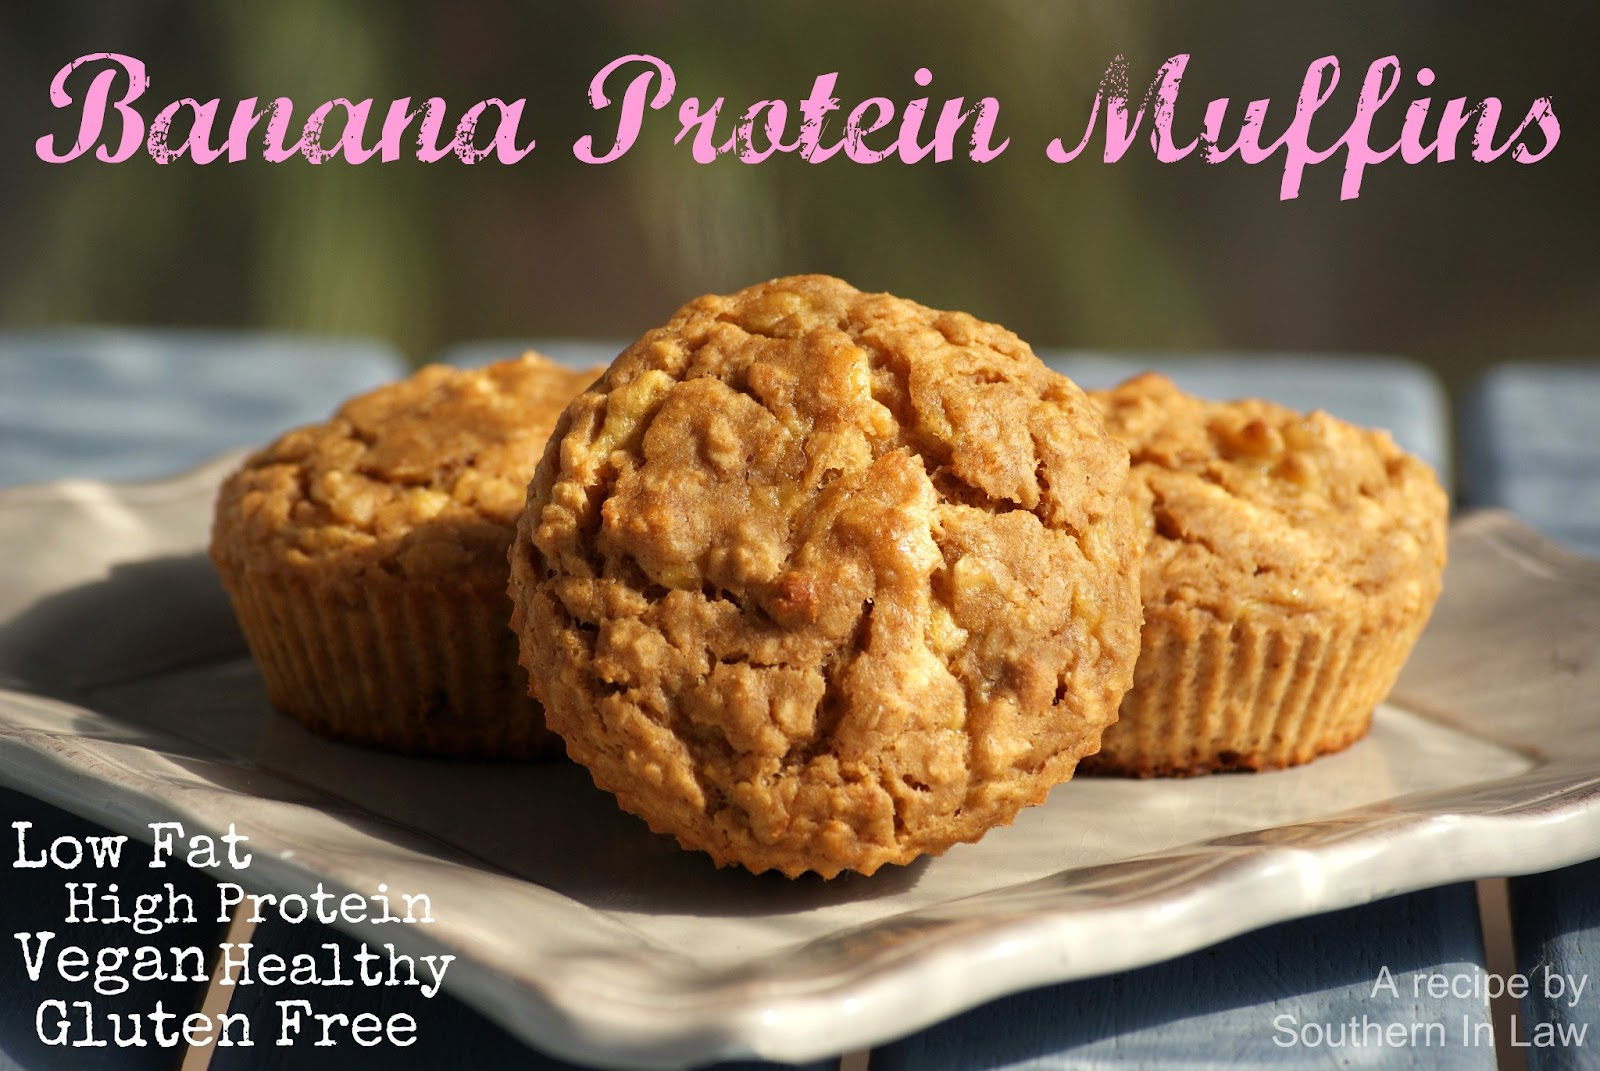 Southern In Law: Recipe: Banana Protein Muffins